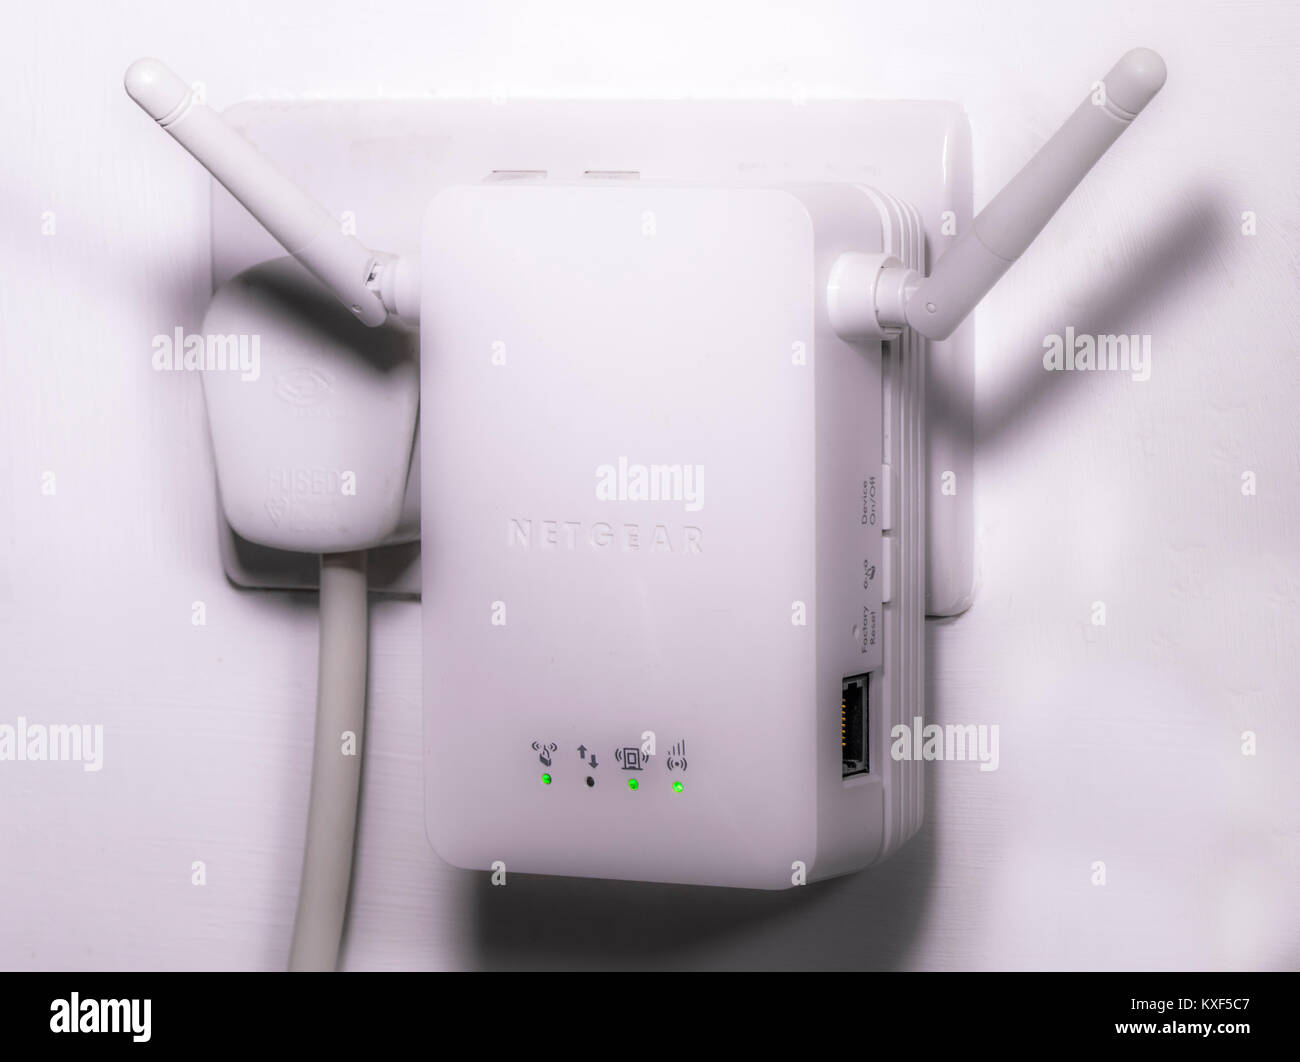 Netgear wifi / wi-fi wireless internet extender, with twin antennas plugged into an electrical wall socket, with - Stock Image